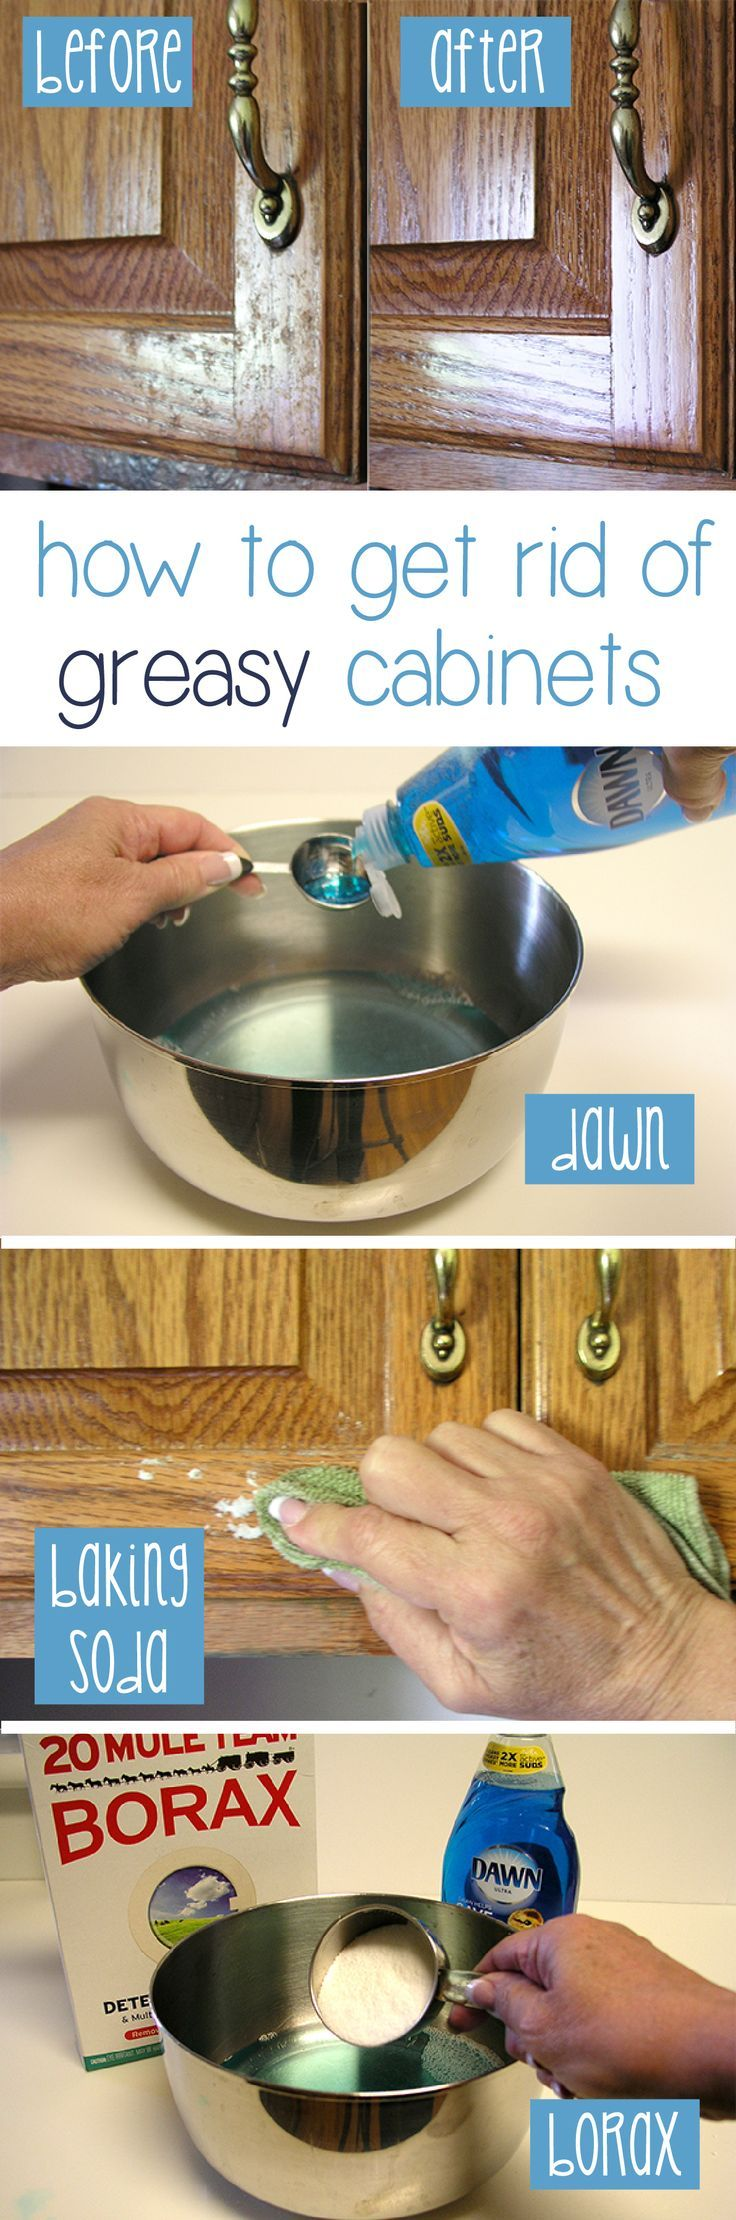 How To Clean Grease And Grime From Kitchen Cabinets